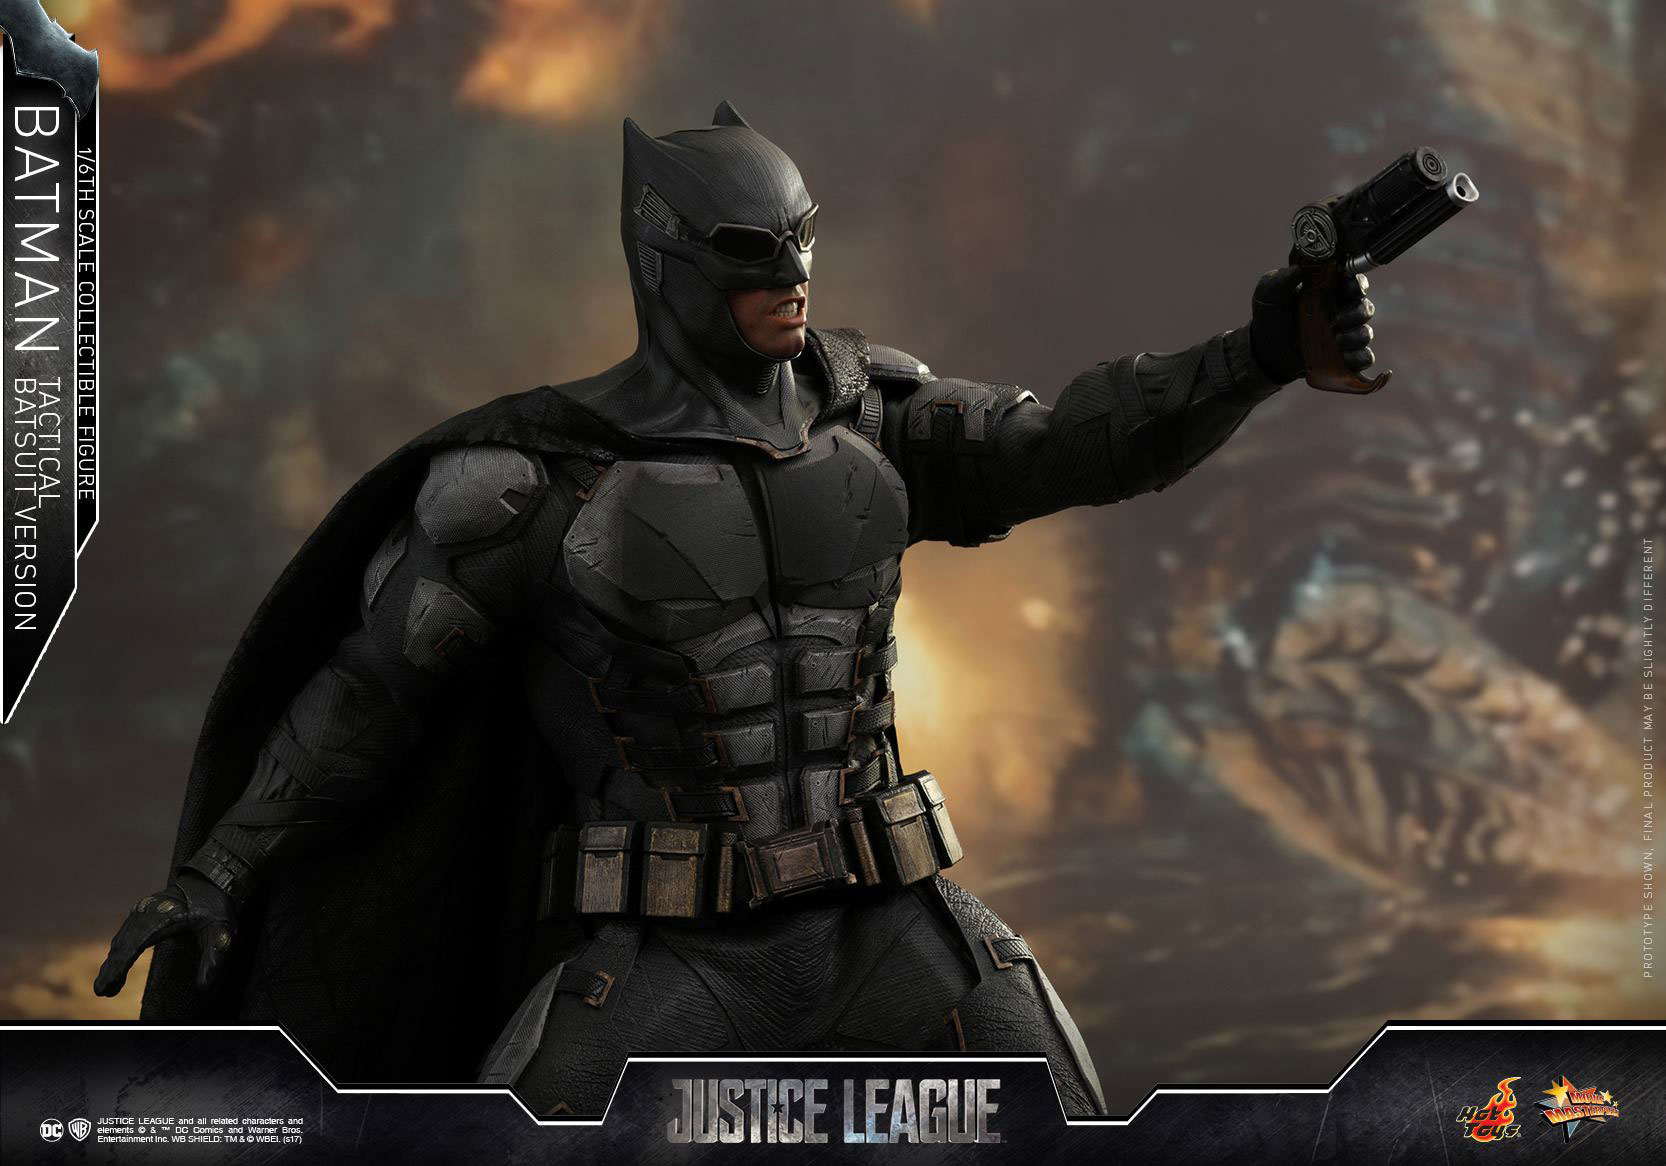 justice-league-batman-tactical-suit-hot-toys-figure-1